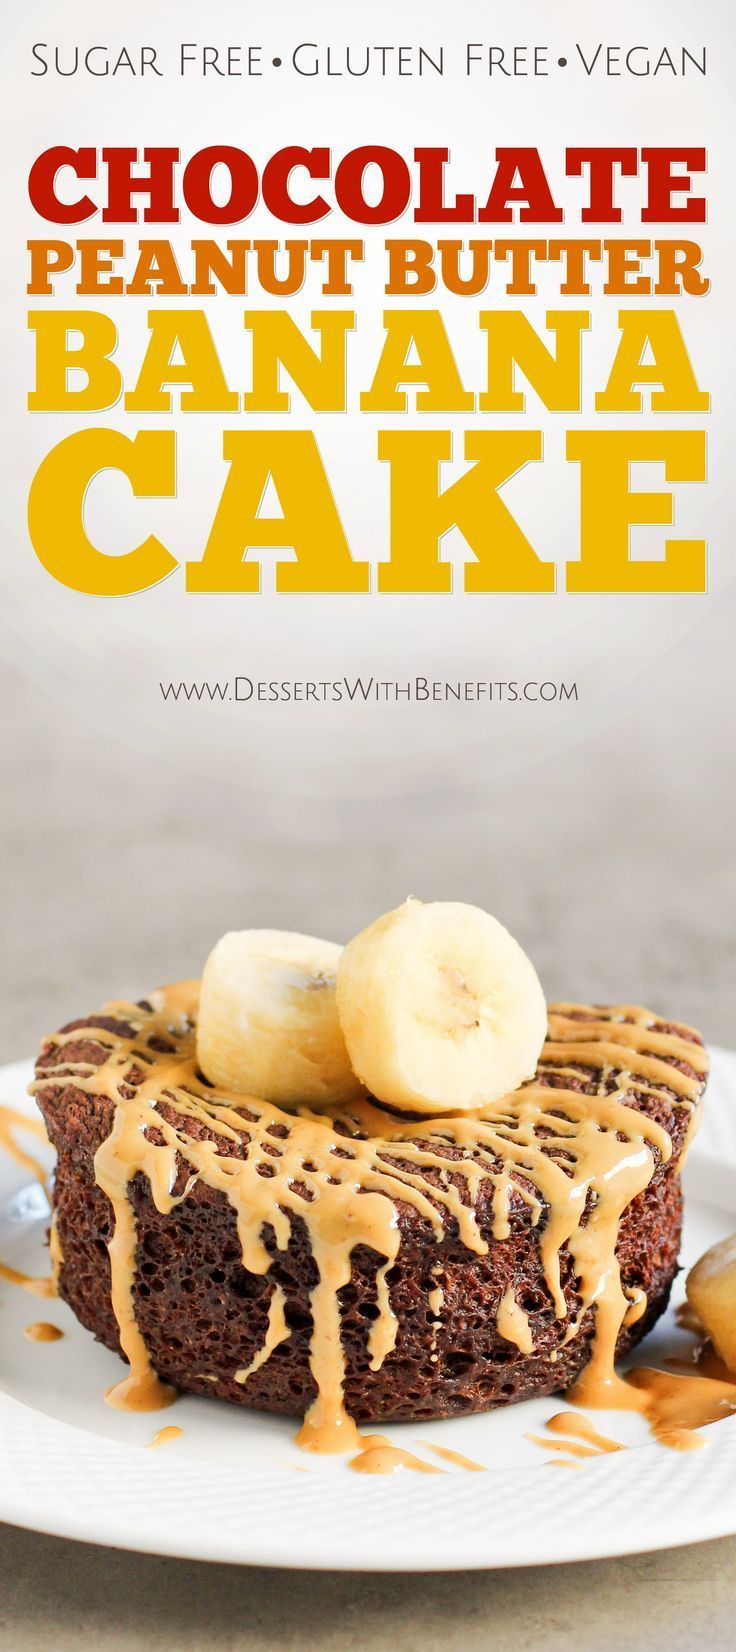 You can make this healthy-without-the-healthy-taste Single-Serving Chocolate Peanut Butter Banana Microwave Cake in FIVE minutes flat! It's so light, fluffy, and moist, it's hard to believe it's refined #sugarfree, #highprotein, #glutenfree, #dairyfree, and #vegan! Yep, that's right. No added sugar, butter, oil, flour, or eggs! -- Healthy Dessert Recipes at the Desserts With Benefits Blog (www.DessertsWithBenefits.com)